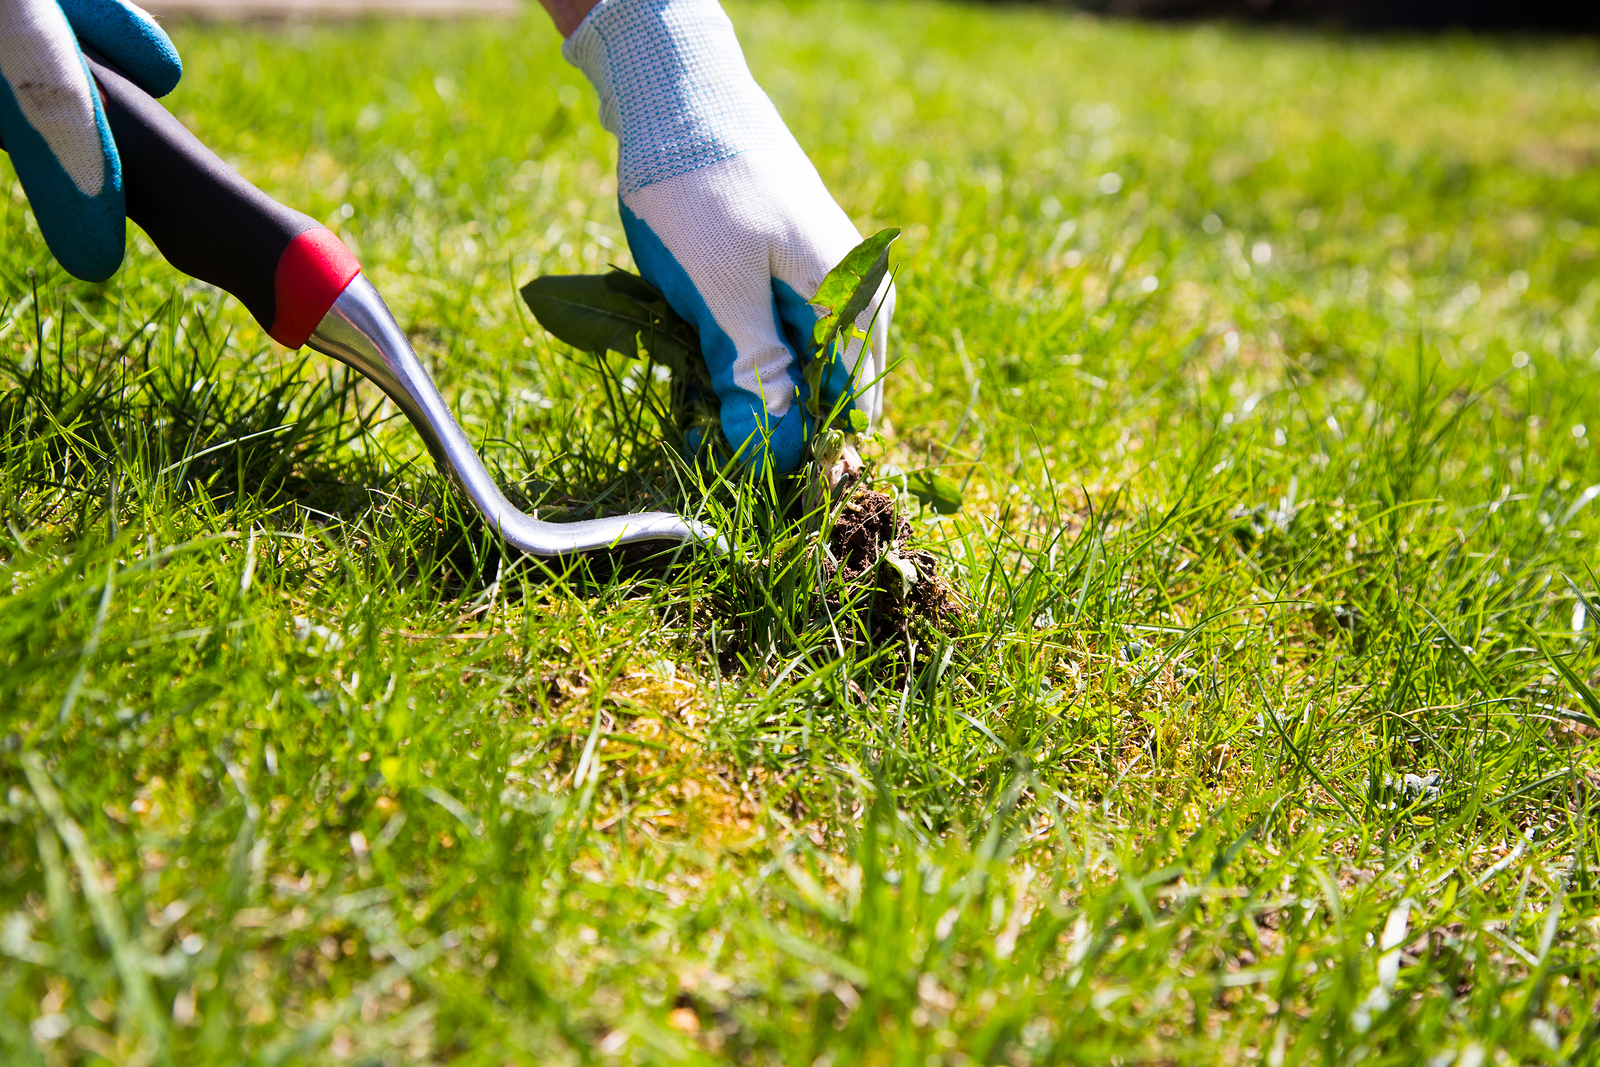 Fall Yard Care Tips: Take Care of Your Lawn